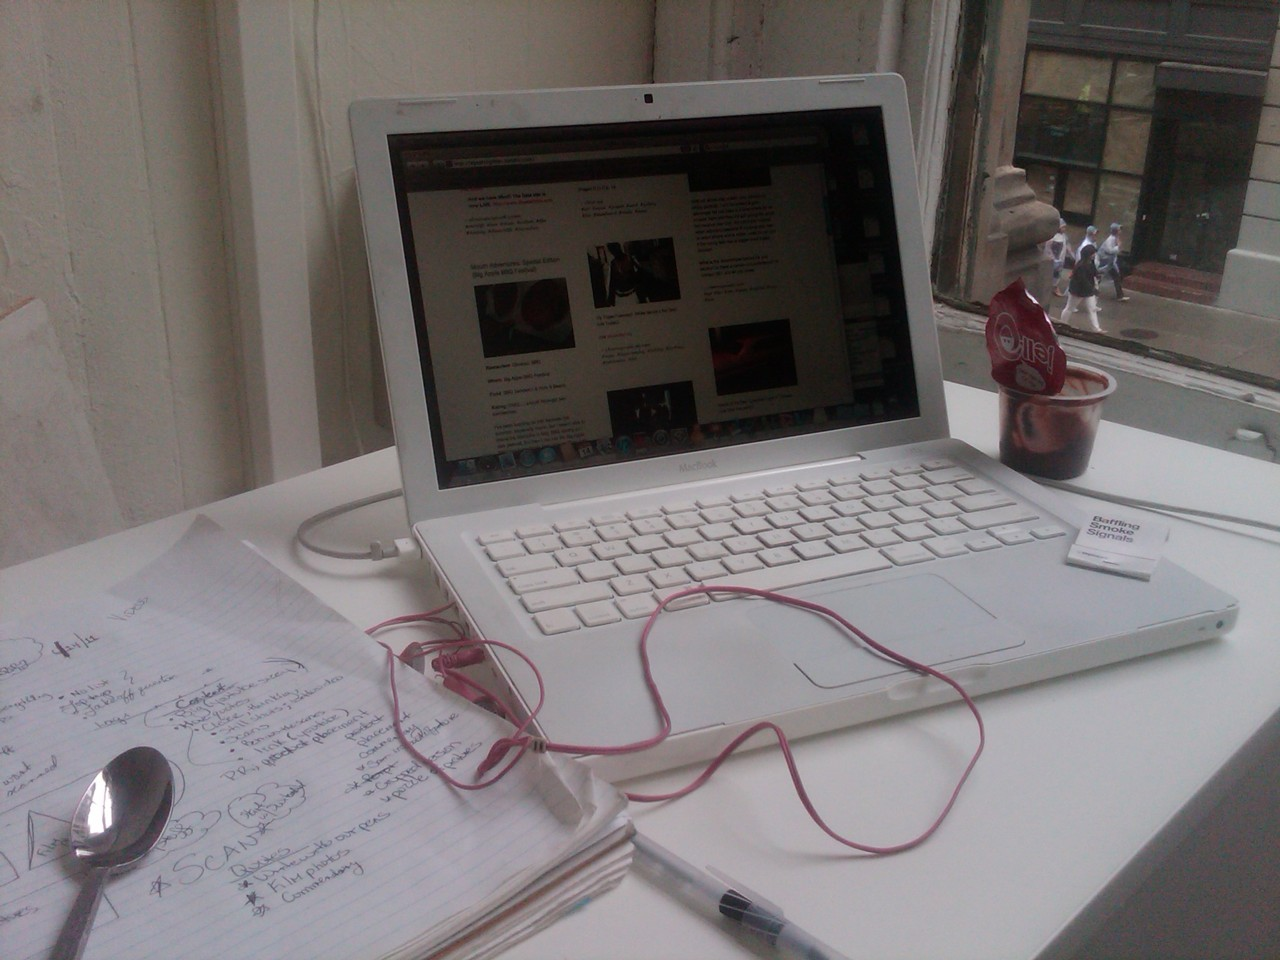 Desk of the Day: Cold Pudding x Rachett Earphones.